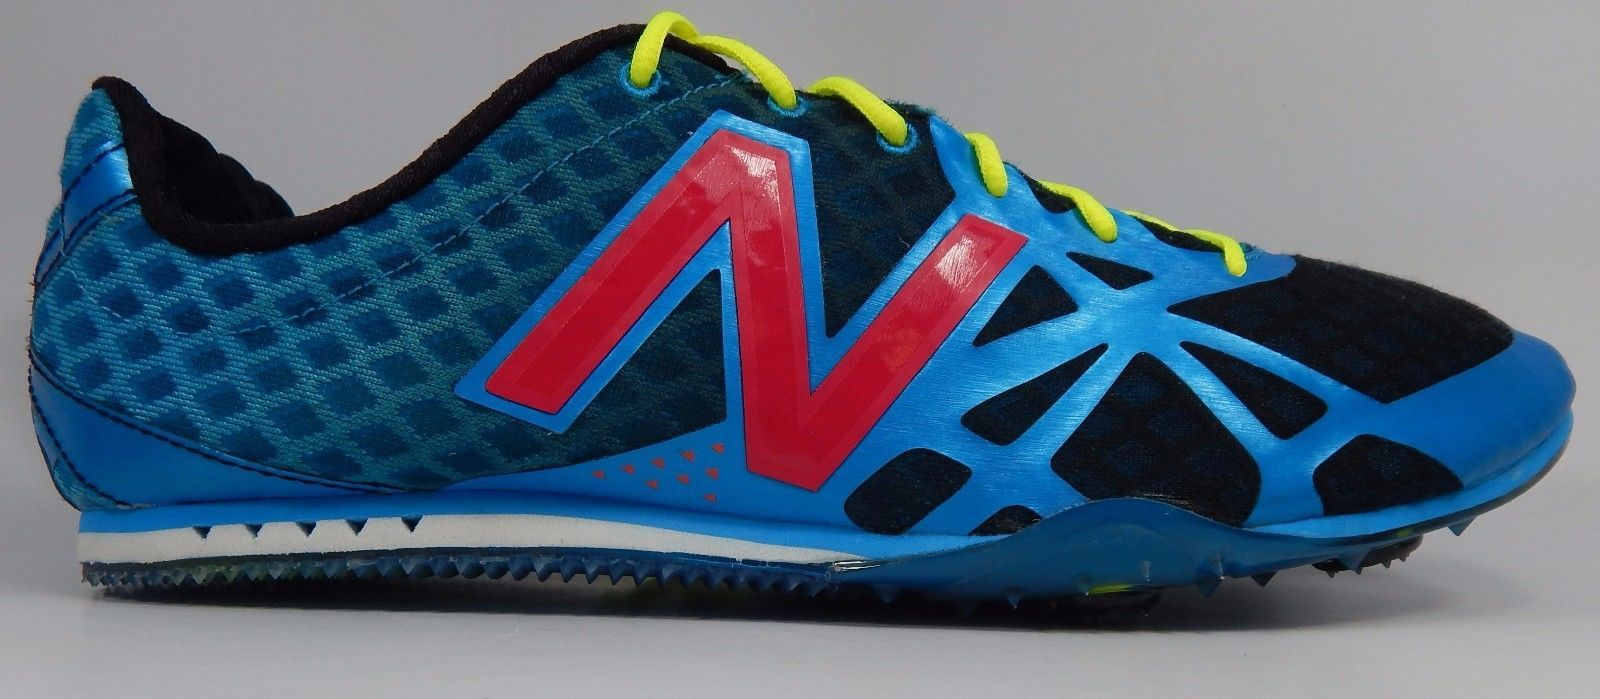 New Balance MD 500 v2 Men's Track Shoes Size US 12.5 M (D) EU 47 Blue MMD500B2